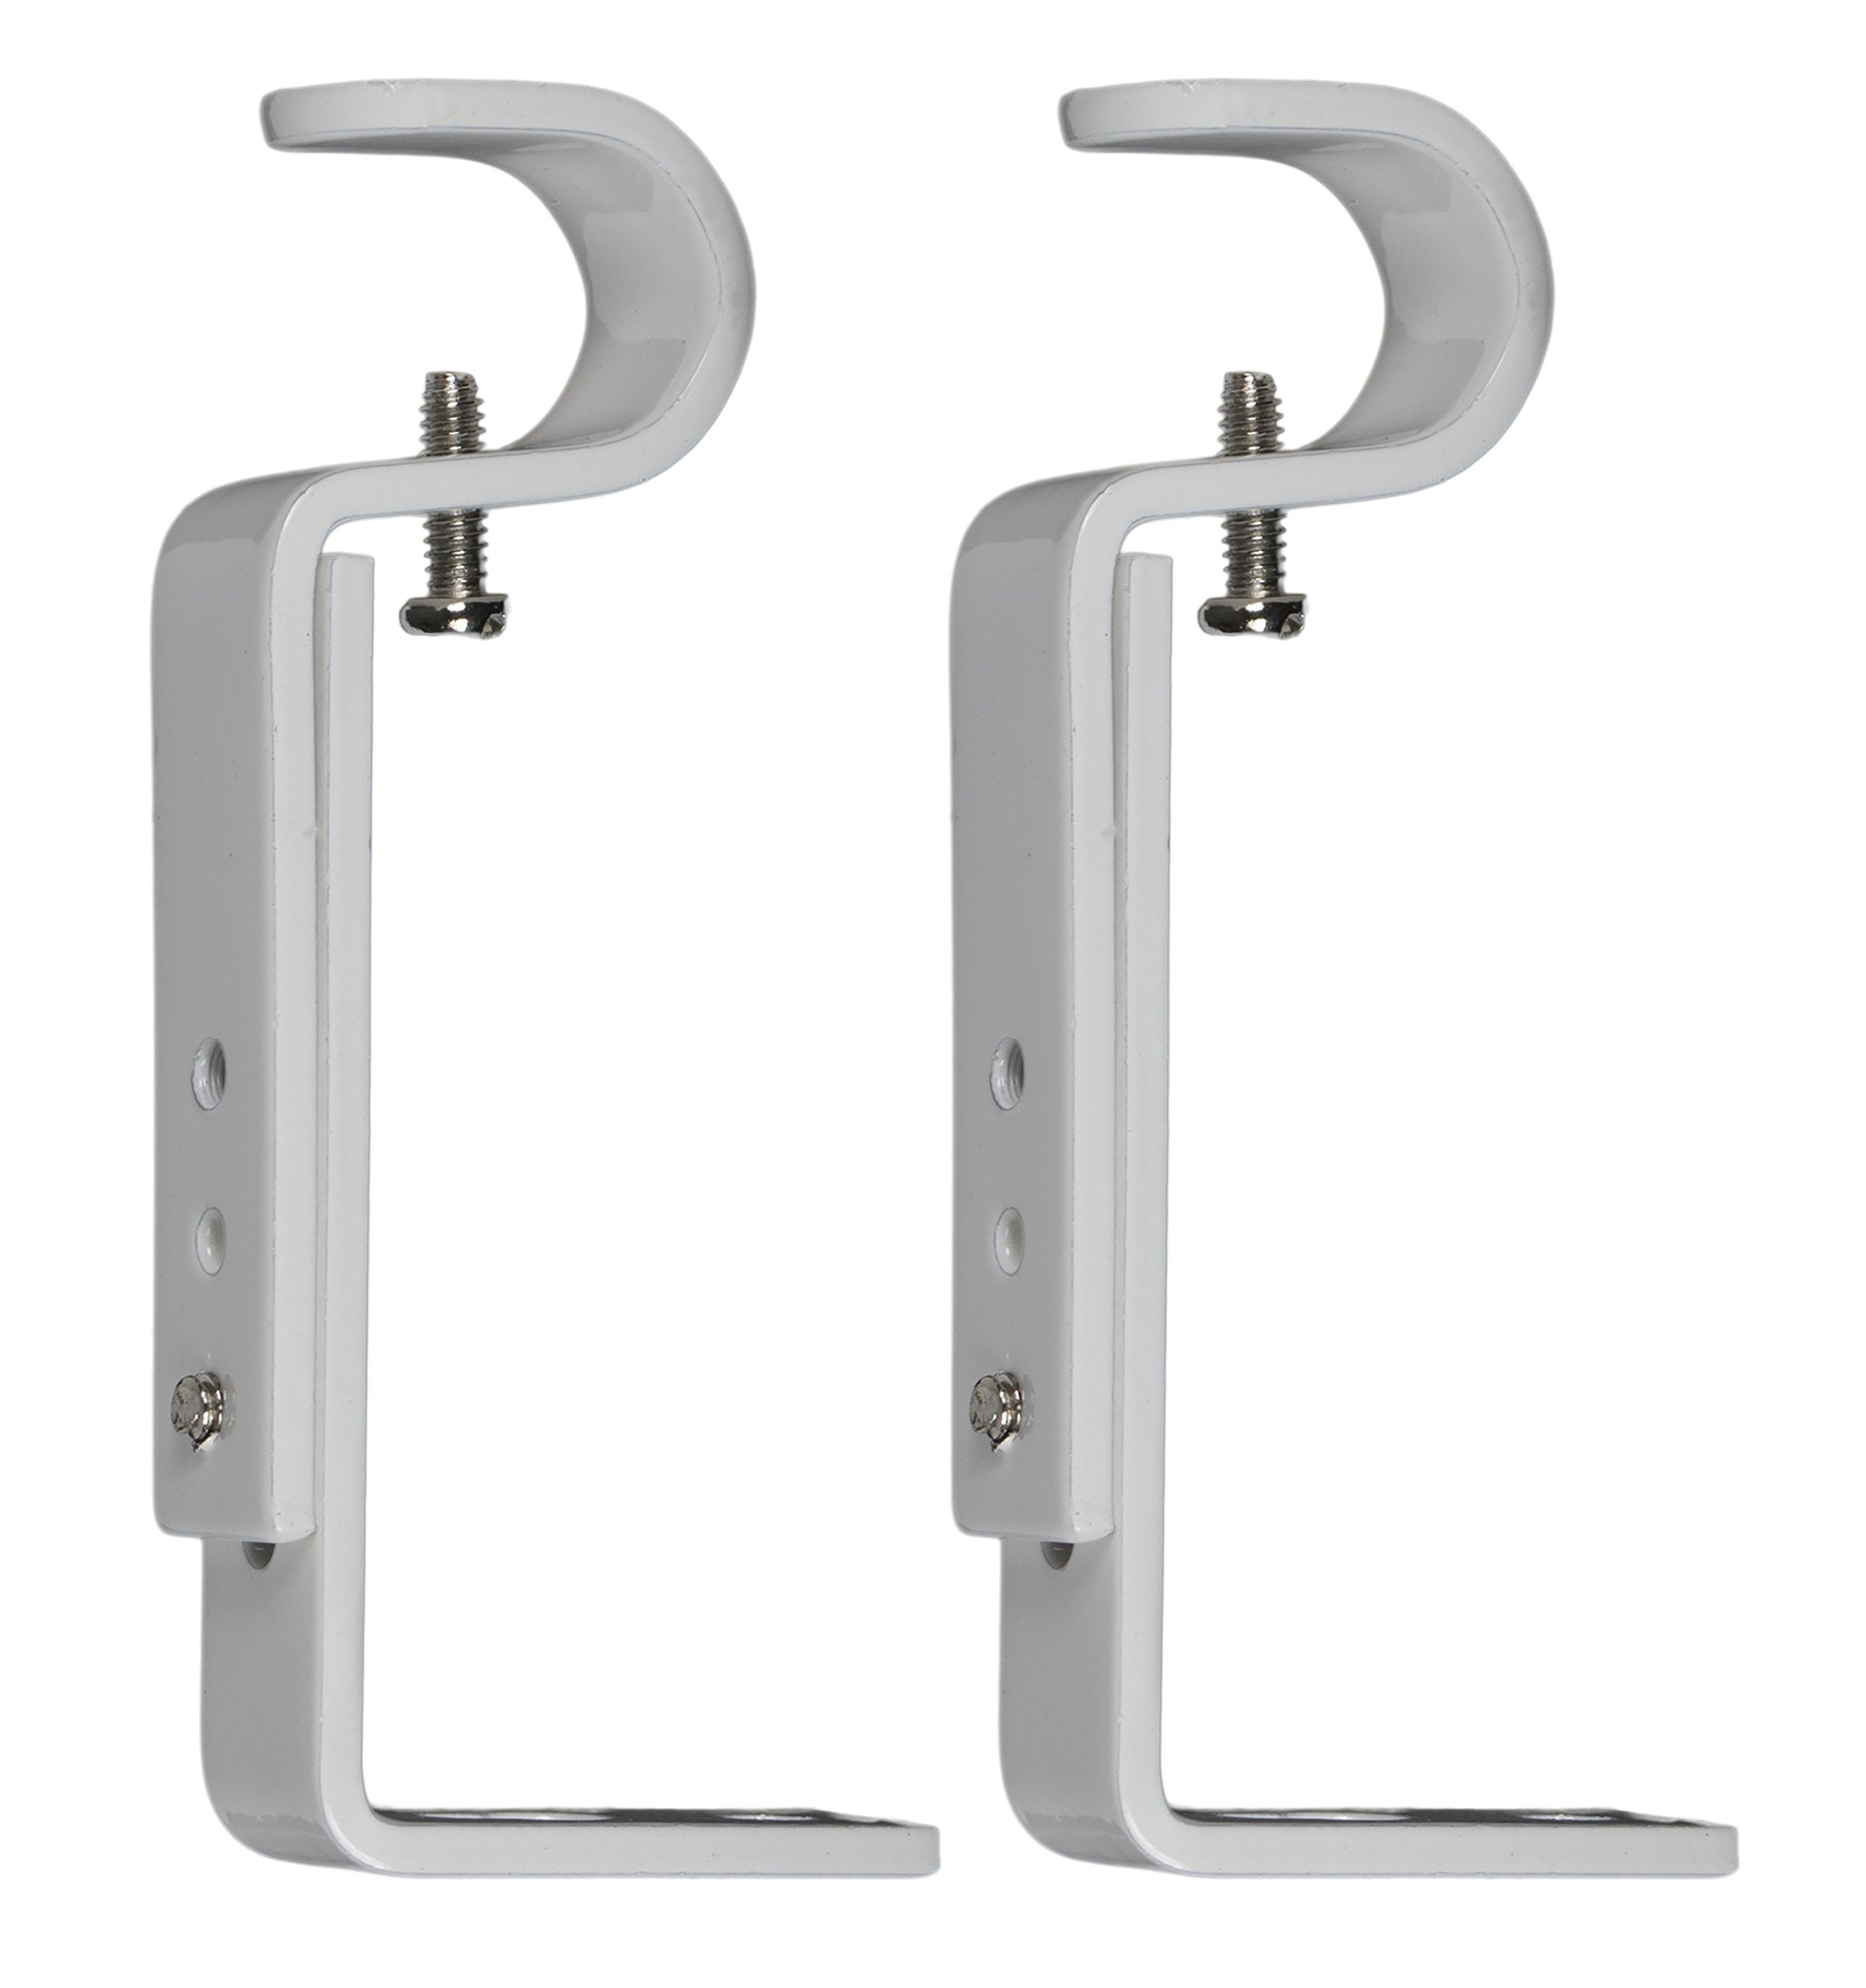 Urbanest Adjustable Bracket for 1/2-inch and 5/8-inch Curtain Drapery Rod, 2 Pieces, Glossy White